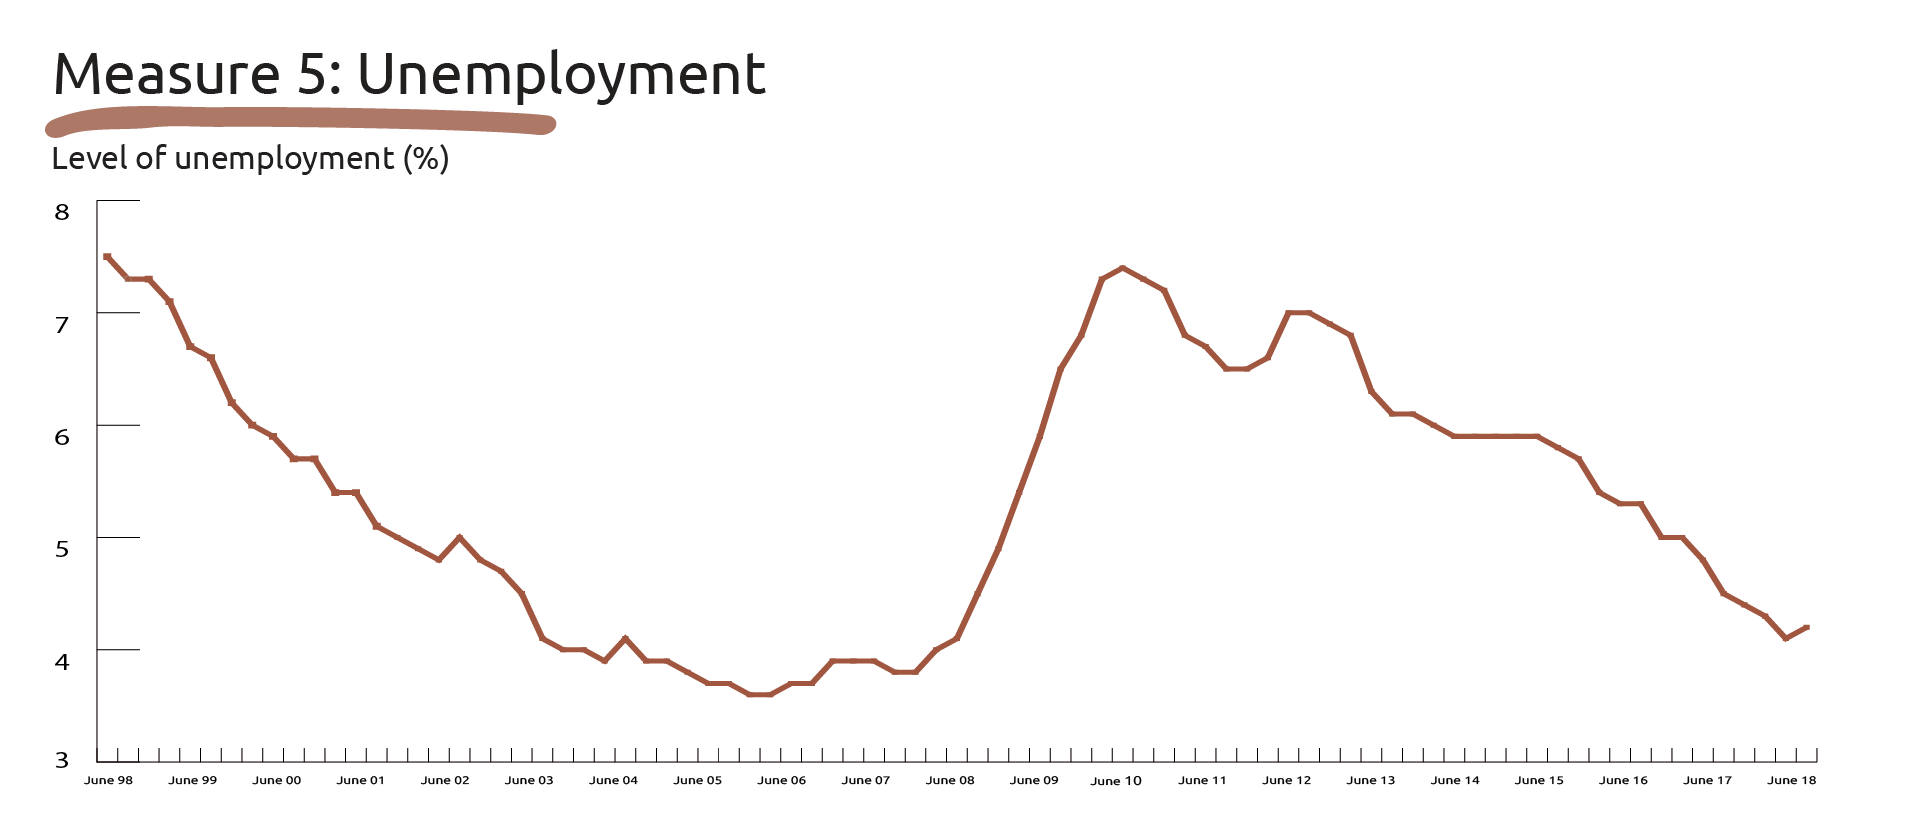 Image showing the data for Measure 5: Unemployment.